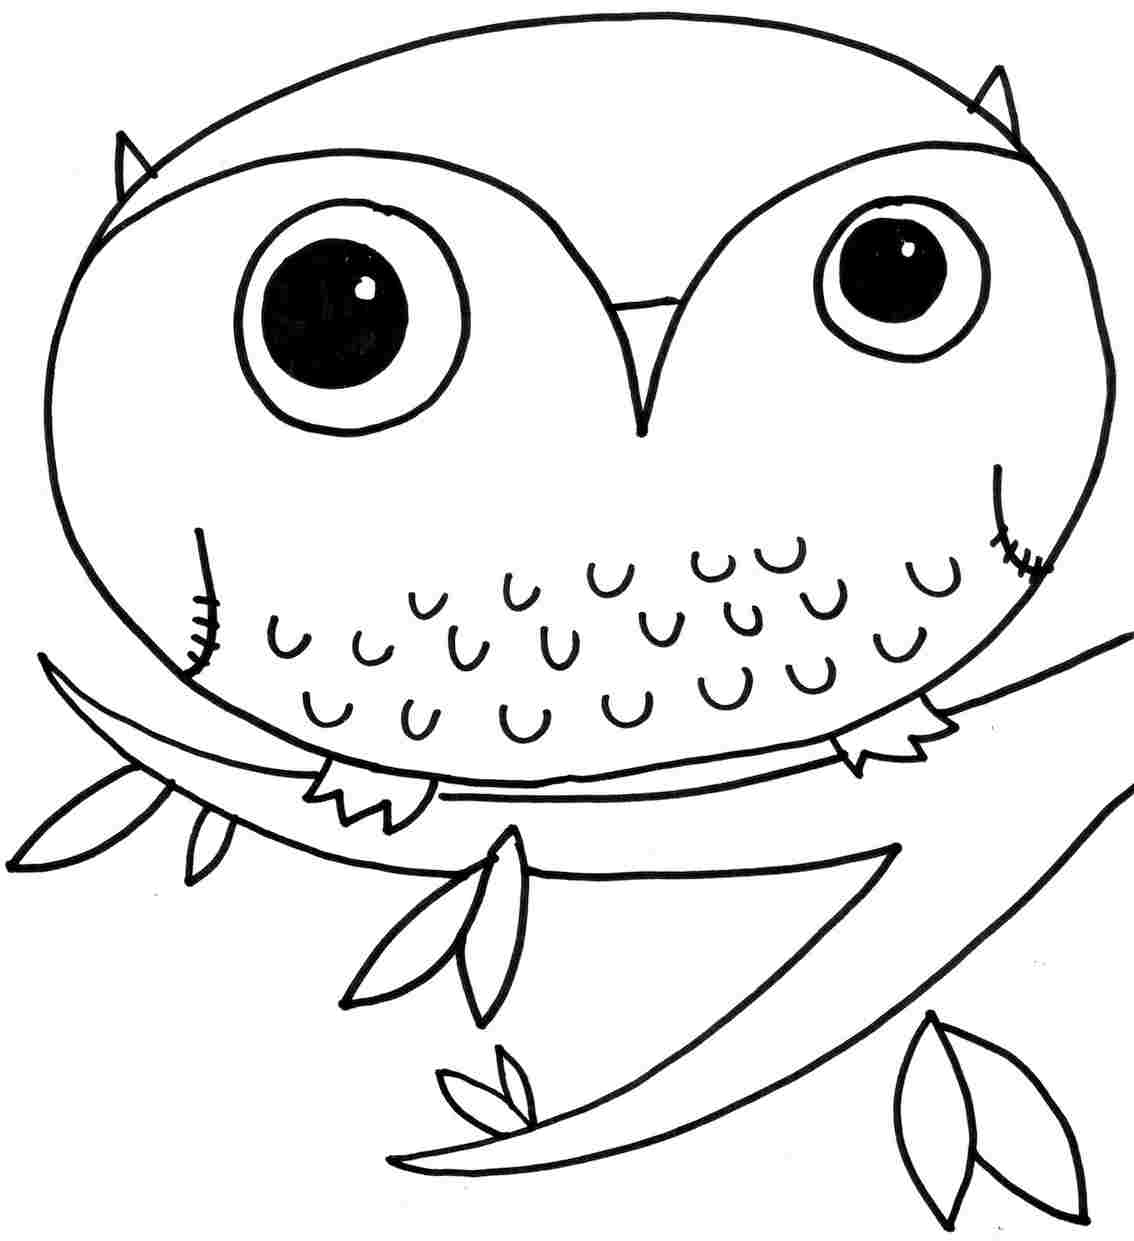 1134x1241 Cute Owl Coloring Pages Inspiring Ribsvigyapan Cute Cute